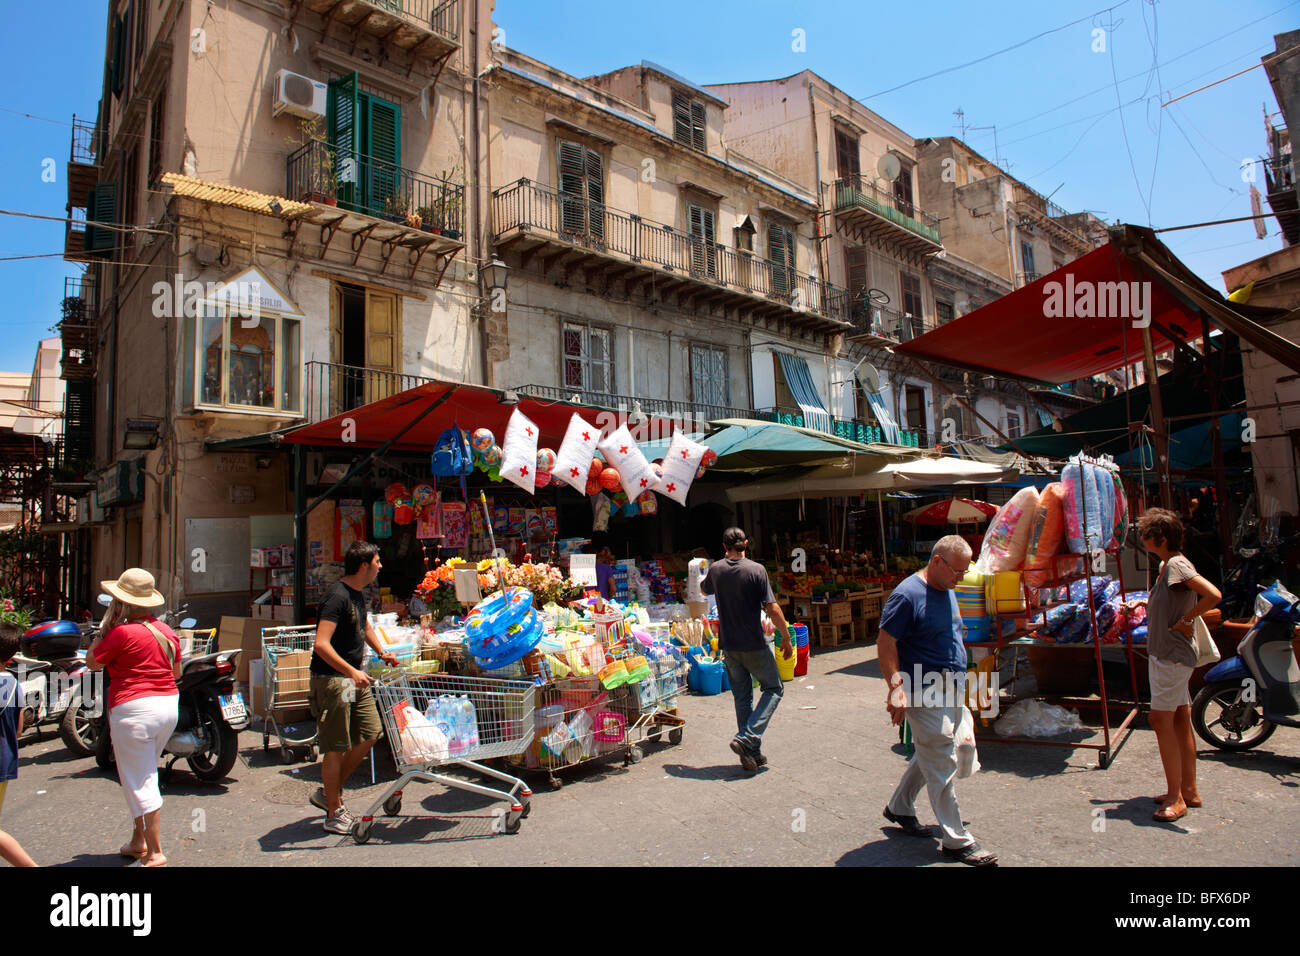 Palermo food market, Sicily - Stock Image